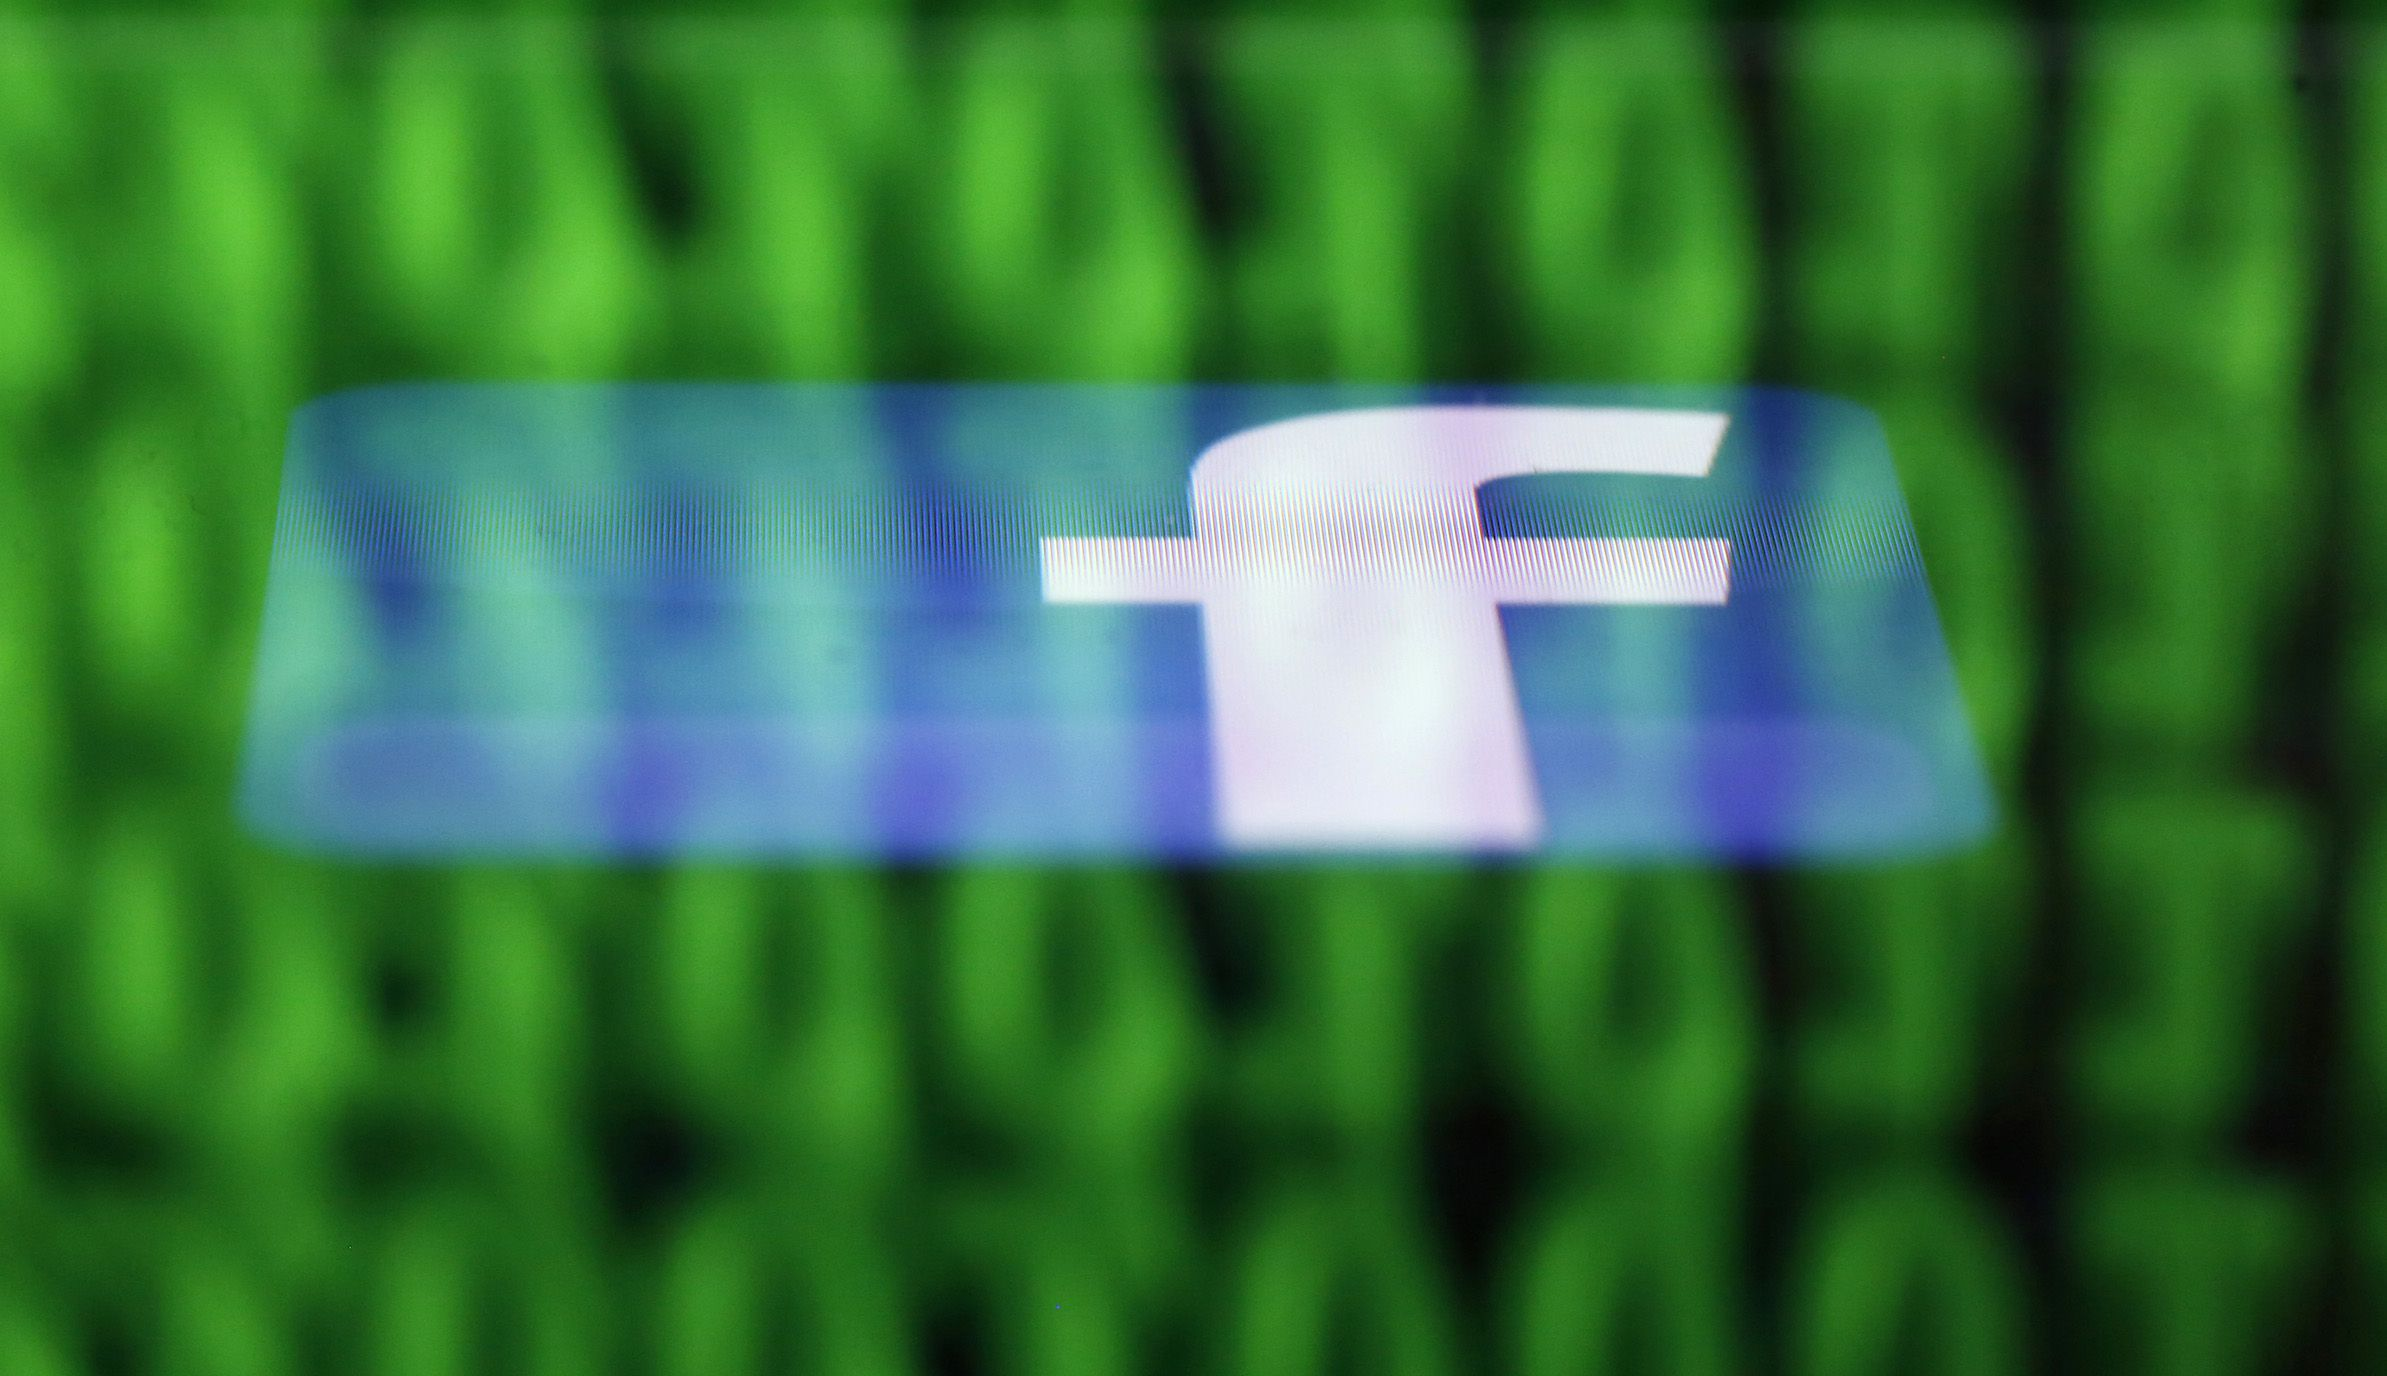 A Facebook logo on an Ipad is under the source code on the LCD Screen shot of a computer reproduced in this photo illustration in Sarajevo on June 18, 2014. Ireland's Supreme Court has questioned the European Court of Justice (ECJ) on Wednesday to review a European Union-US privacy agreement given the allegations that Facebook receives data from EU Users shared with the US National Security Agency REUTERS / Dado Ruvic (BOSNIA AND HERZEGOVINA - Tags: CRIME LAW BUSINESS POLITICS) - R TR3UH6G